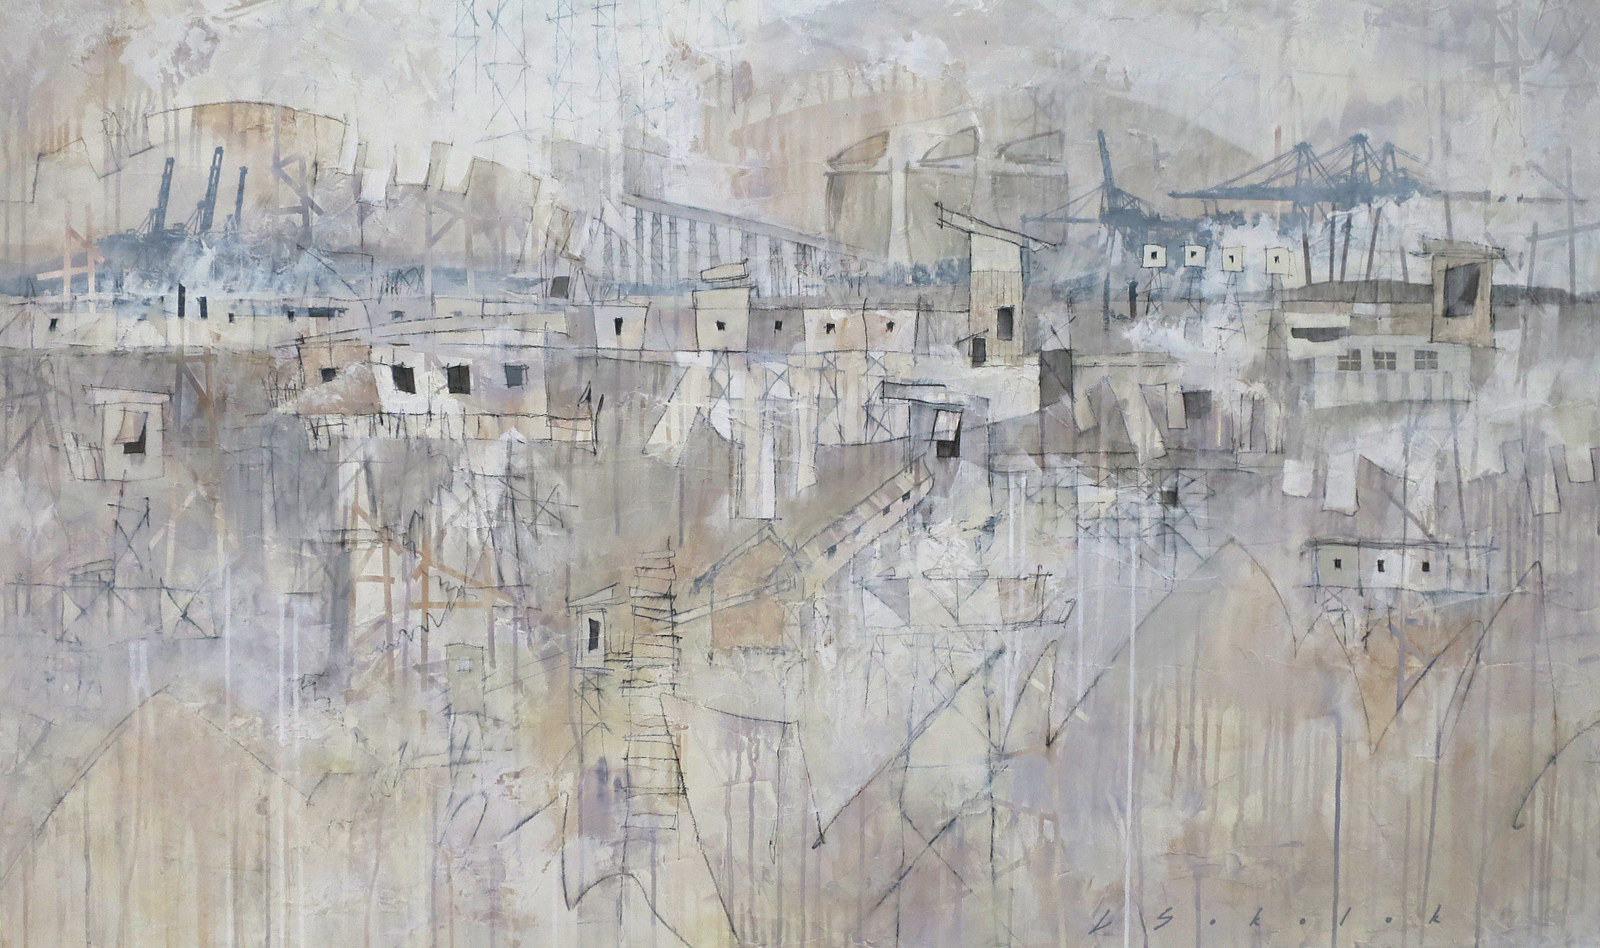 Mixed-media artwork The Port Never Sleeps by Lori Sokoluk